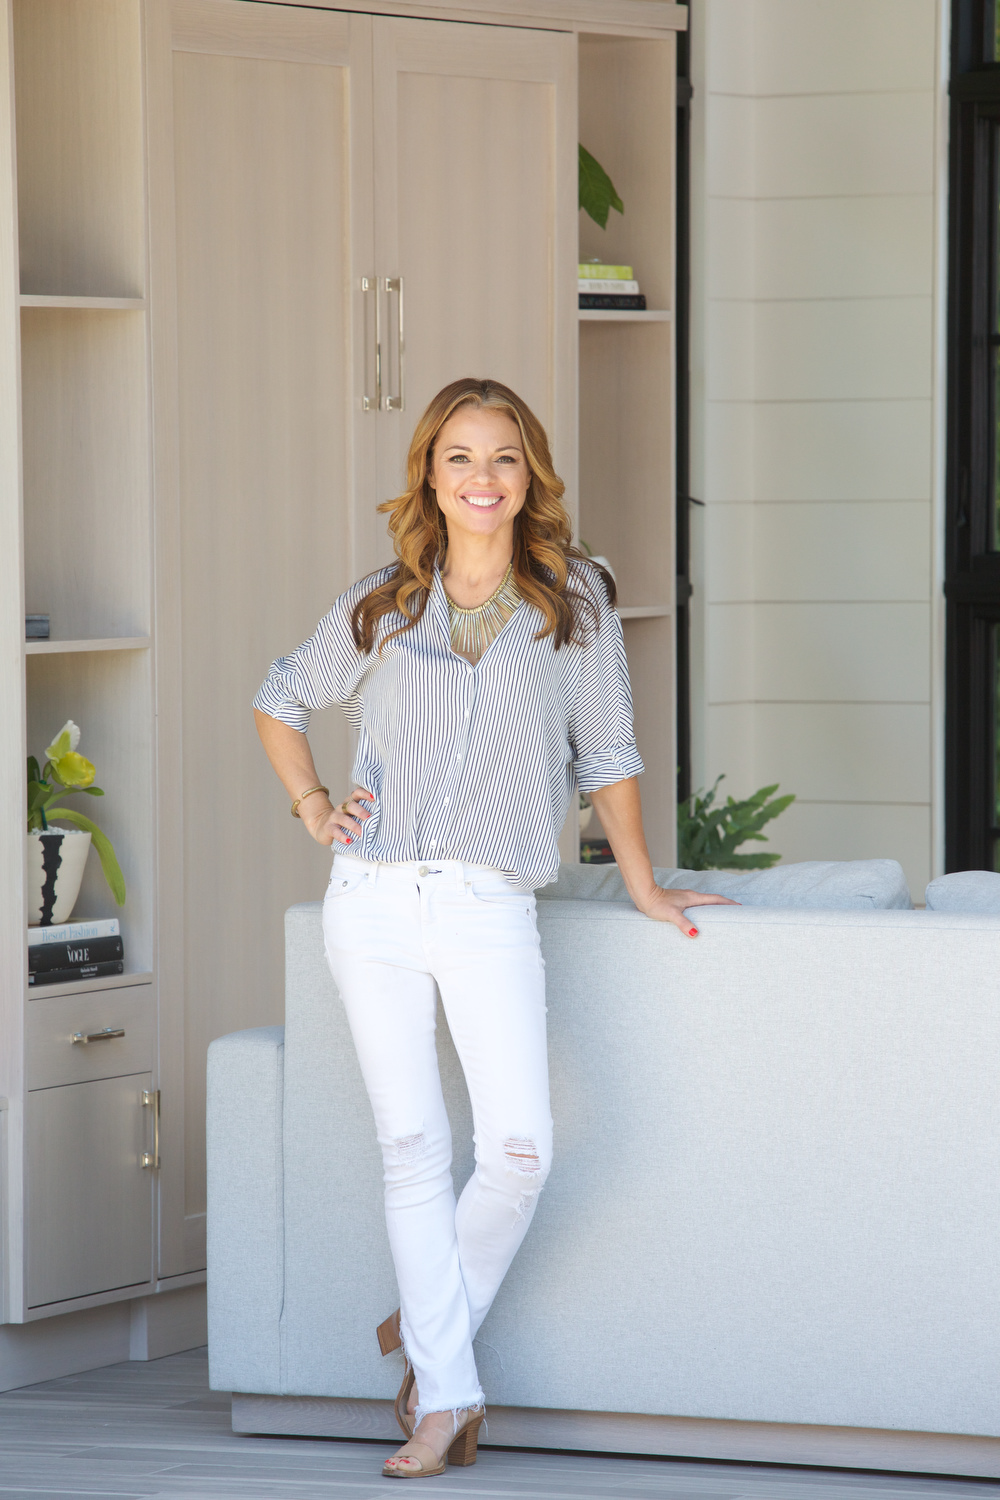 Shannon Wollack, Founder and Partner, Studio Life.Style. Photographer:  Stephen Busken